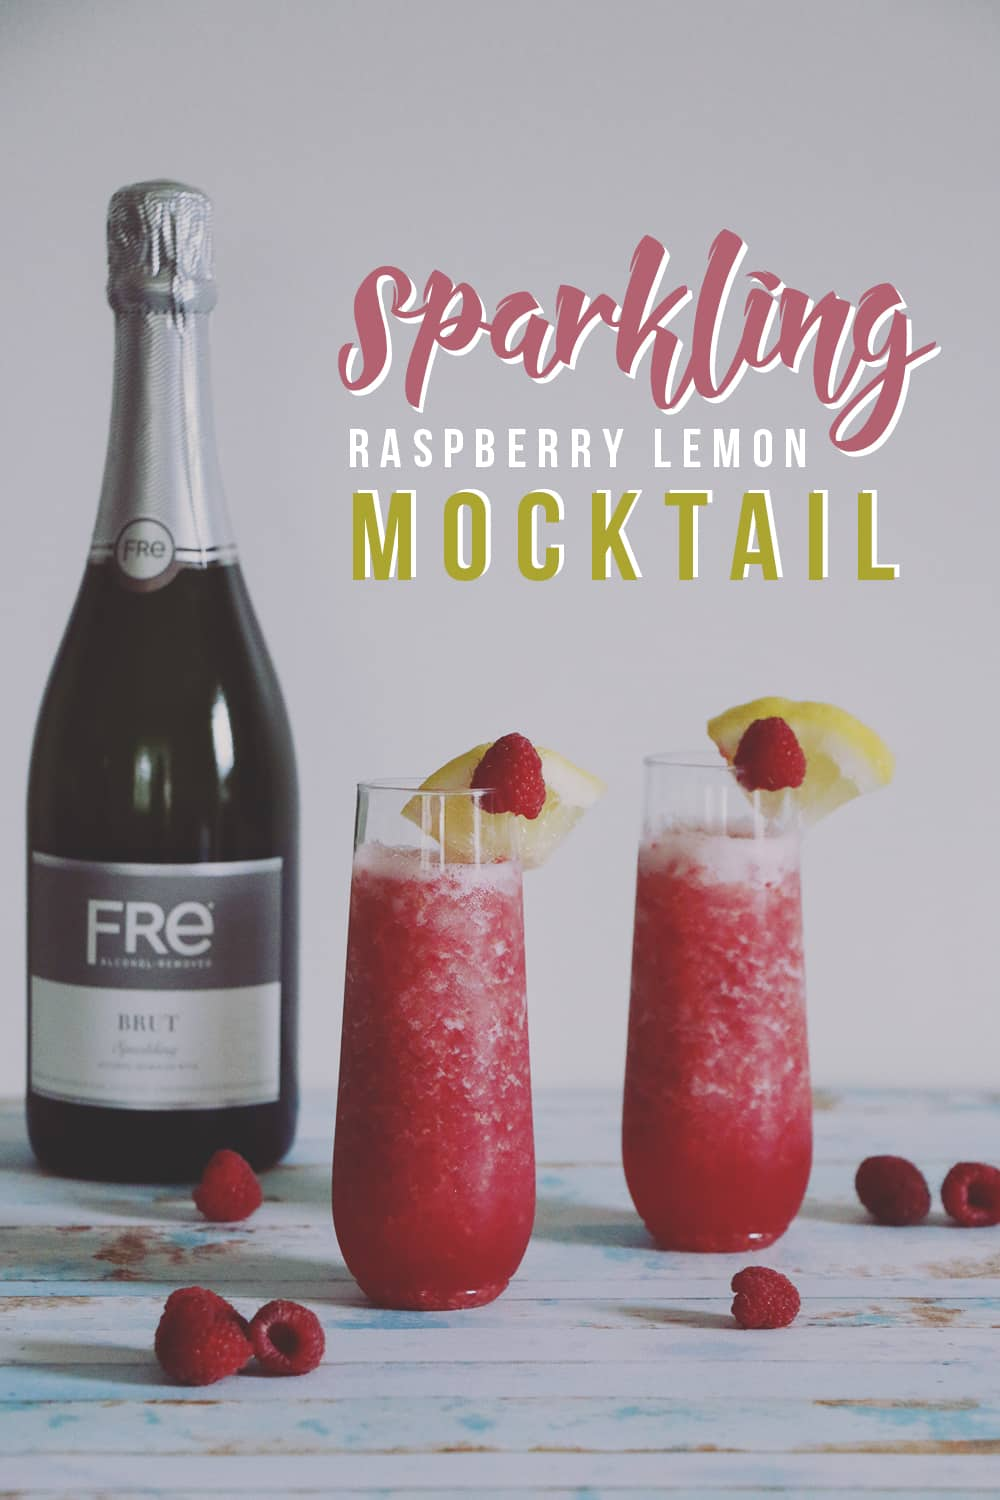 This sparkling raspberry lemon mocktail is a must make drink for Summer! It's refreshing and sweet - perfect for those nights spent enjoying the backyard!